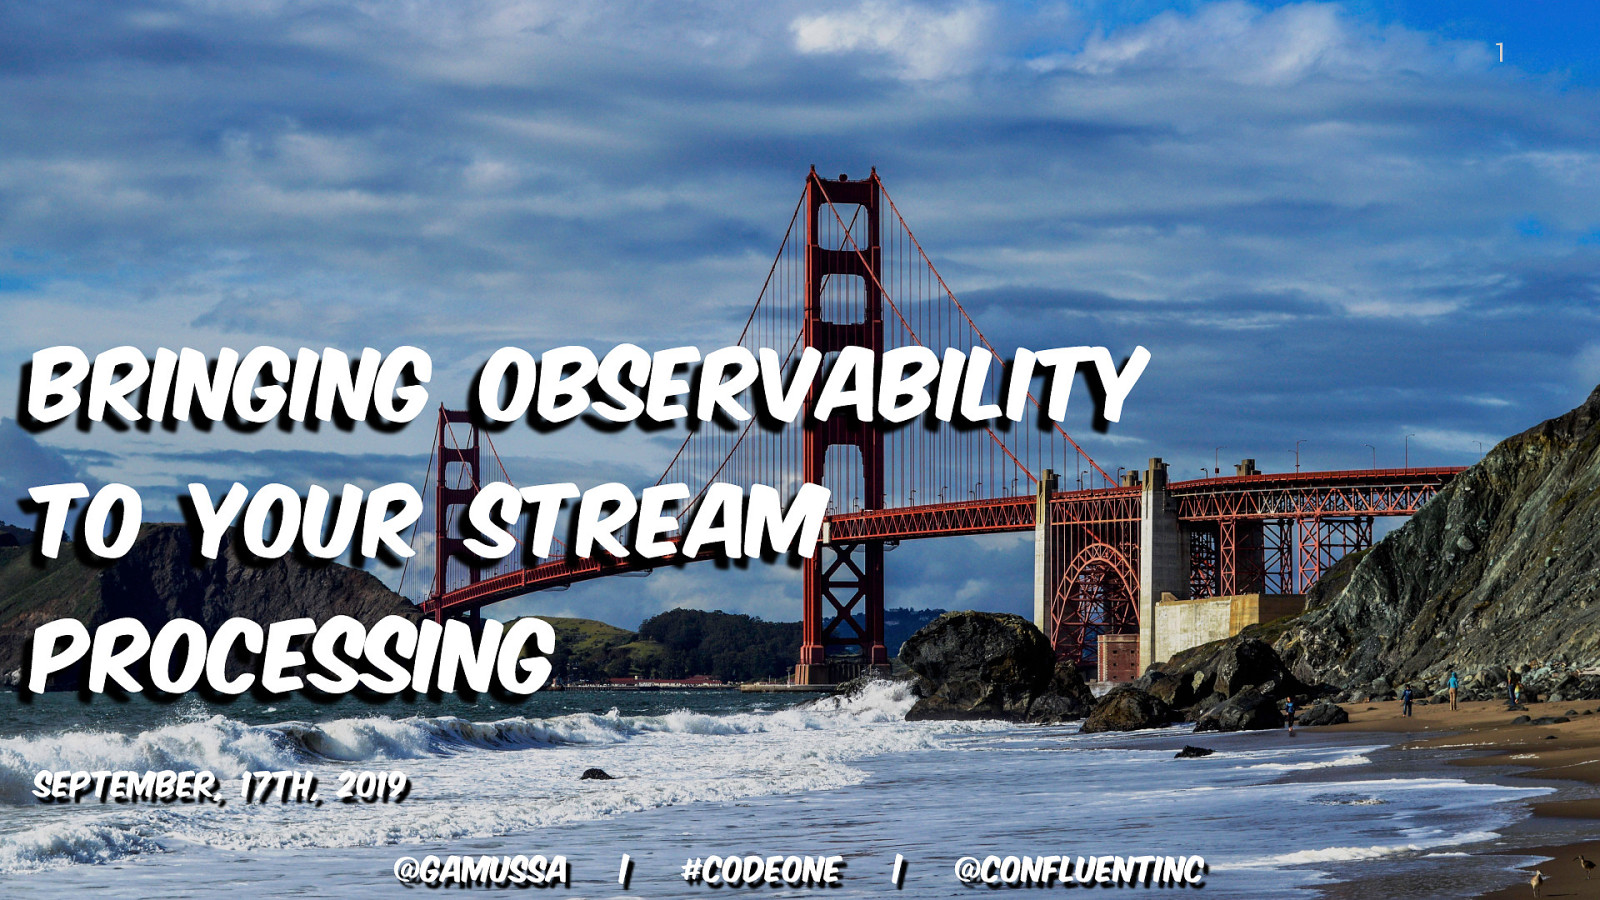 Bringing Observability to Your Stream Processing